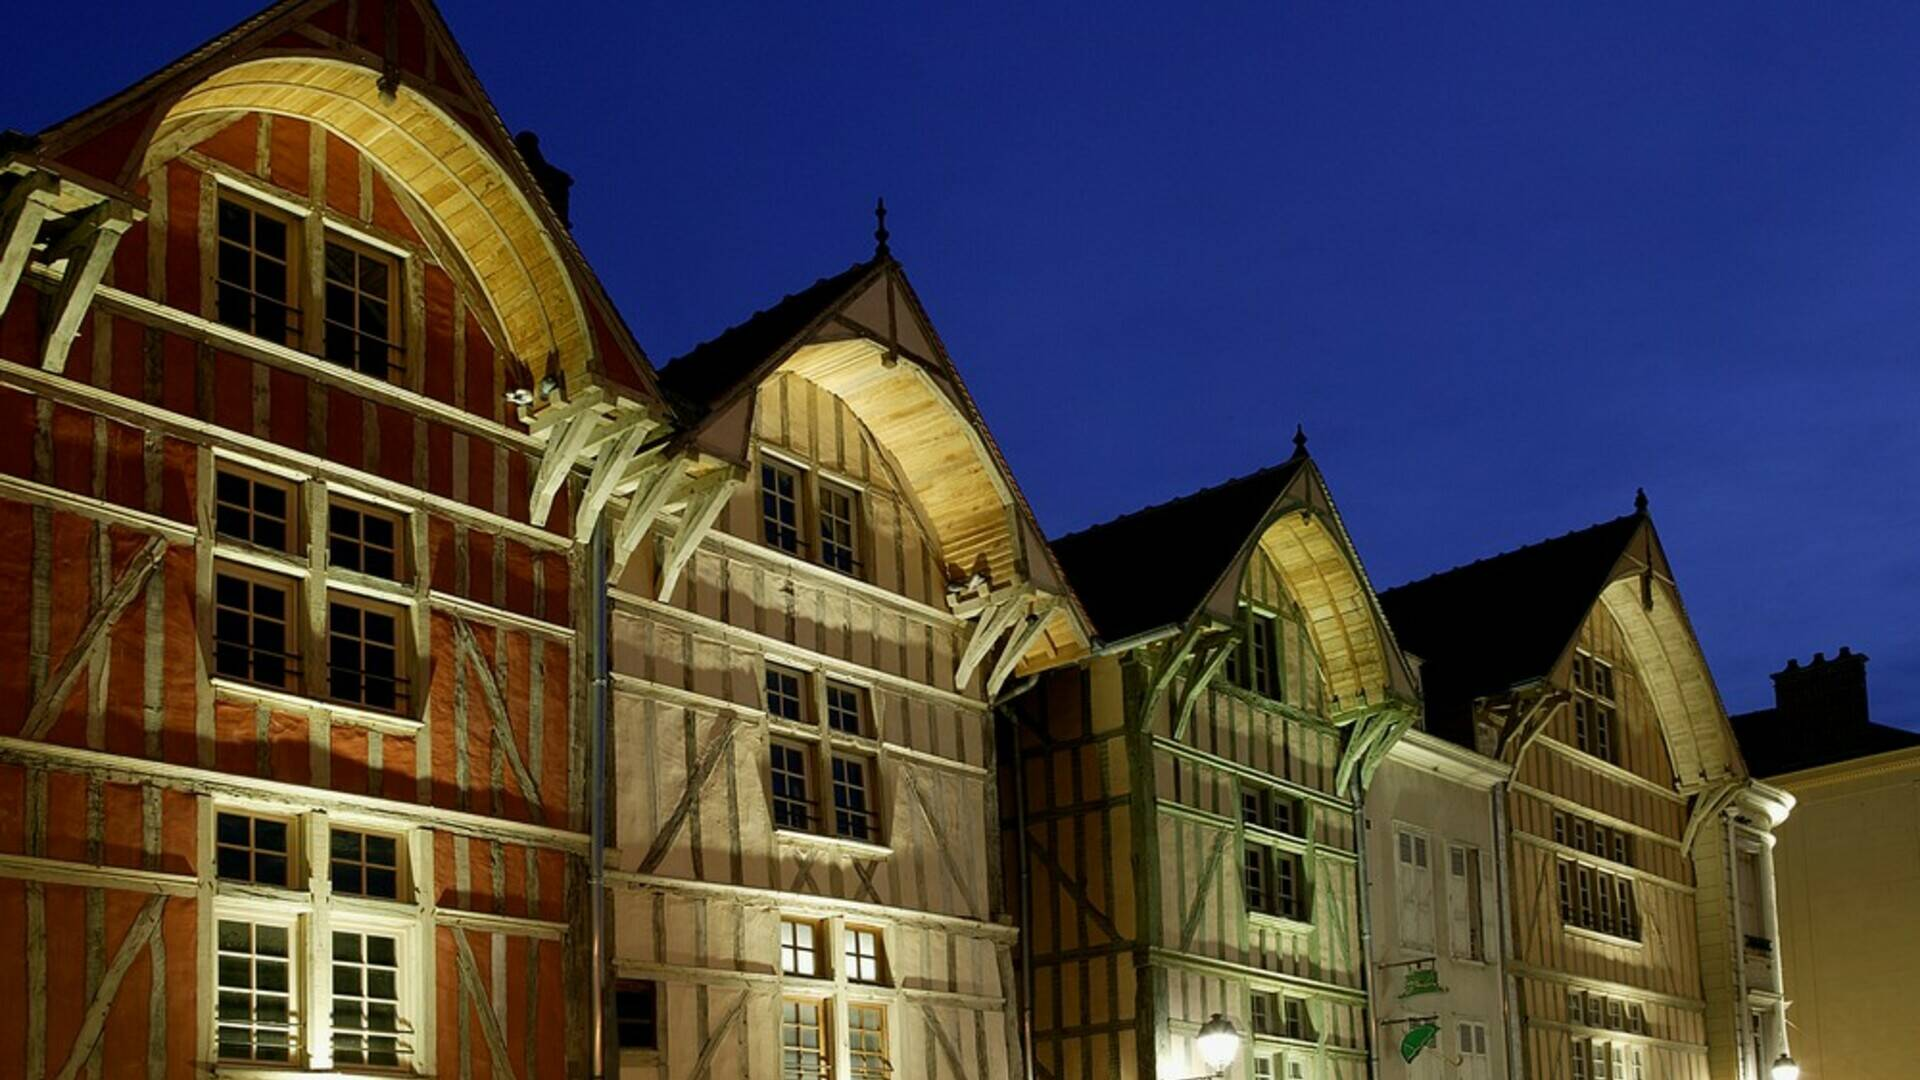 Timber frame houses in Troyes - © D. Le Névé